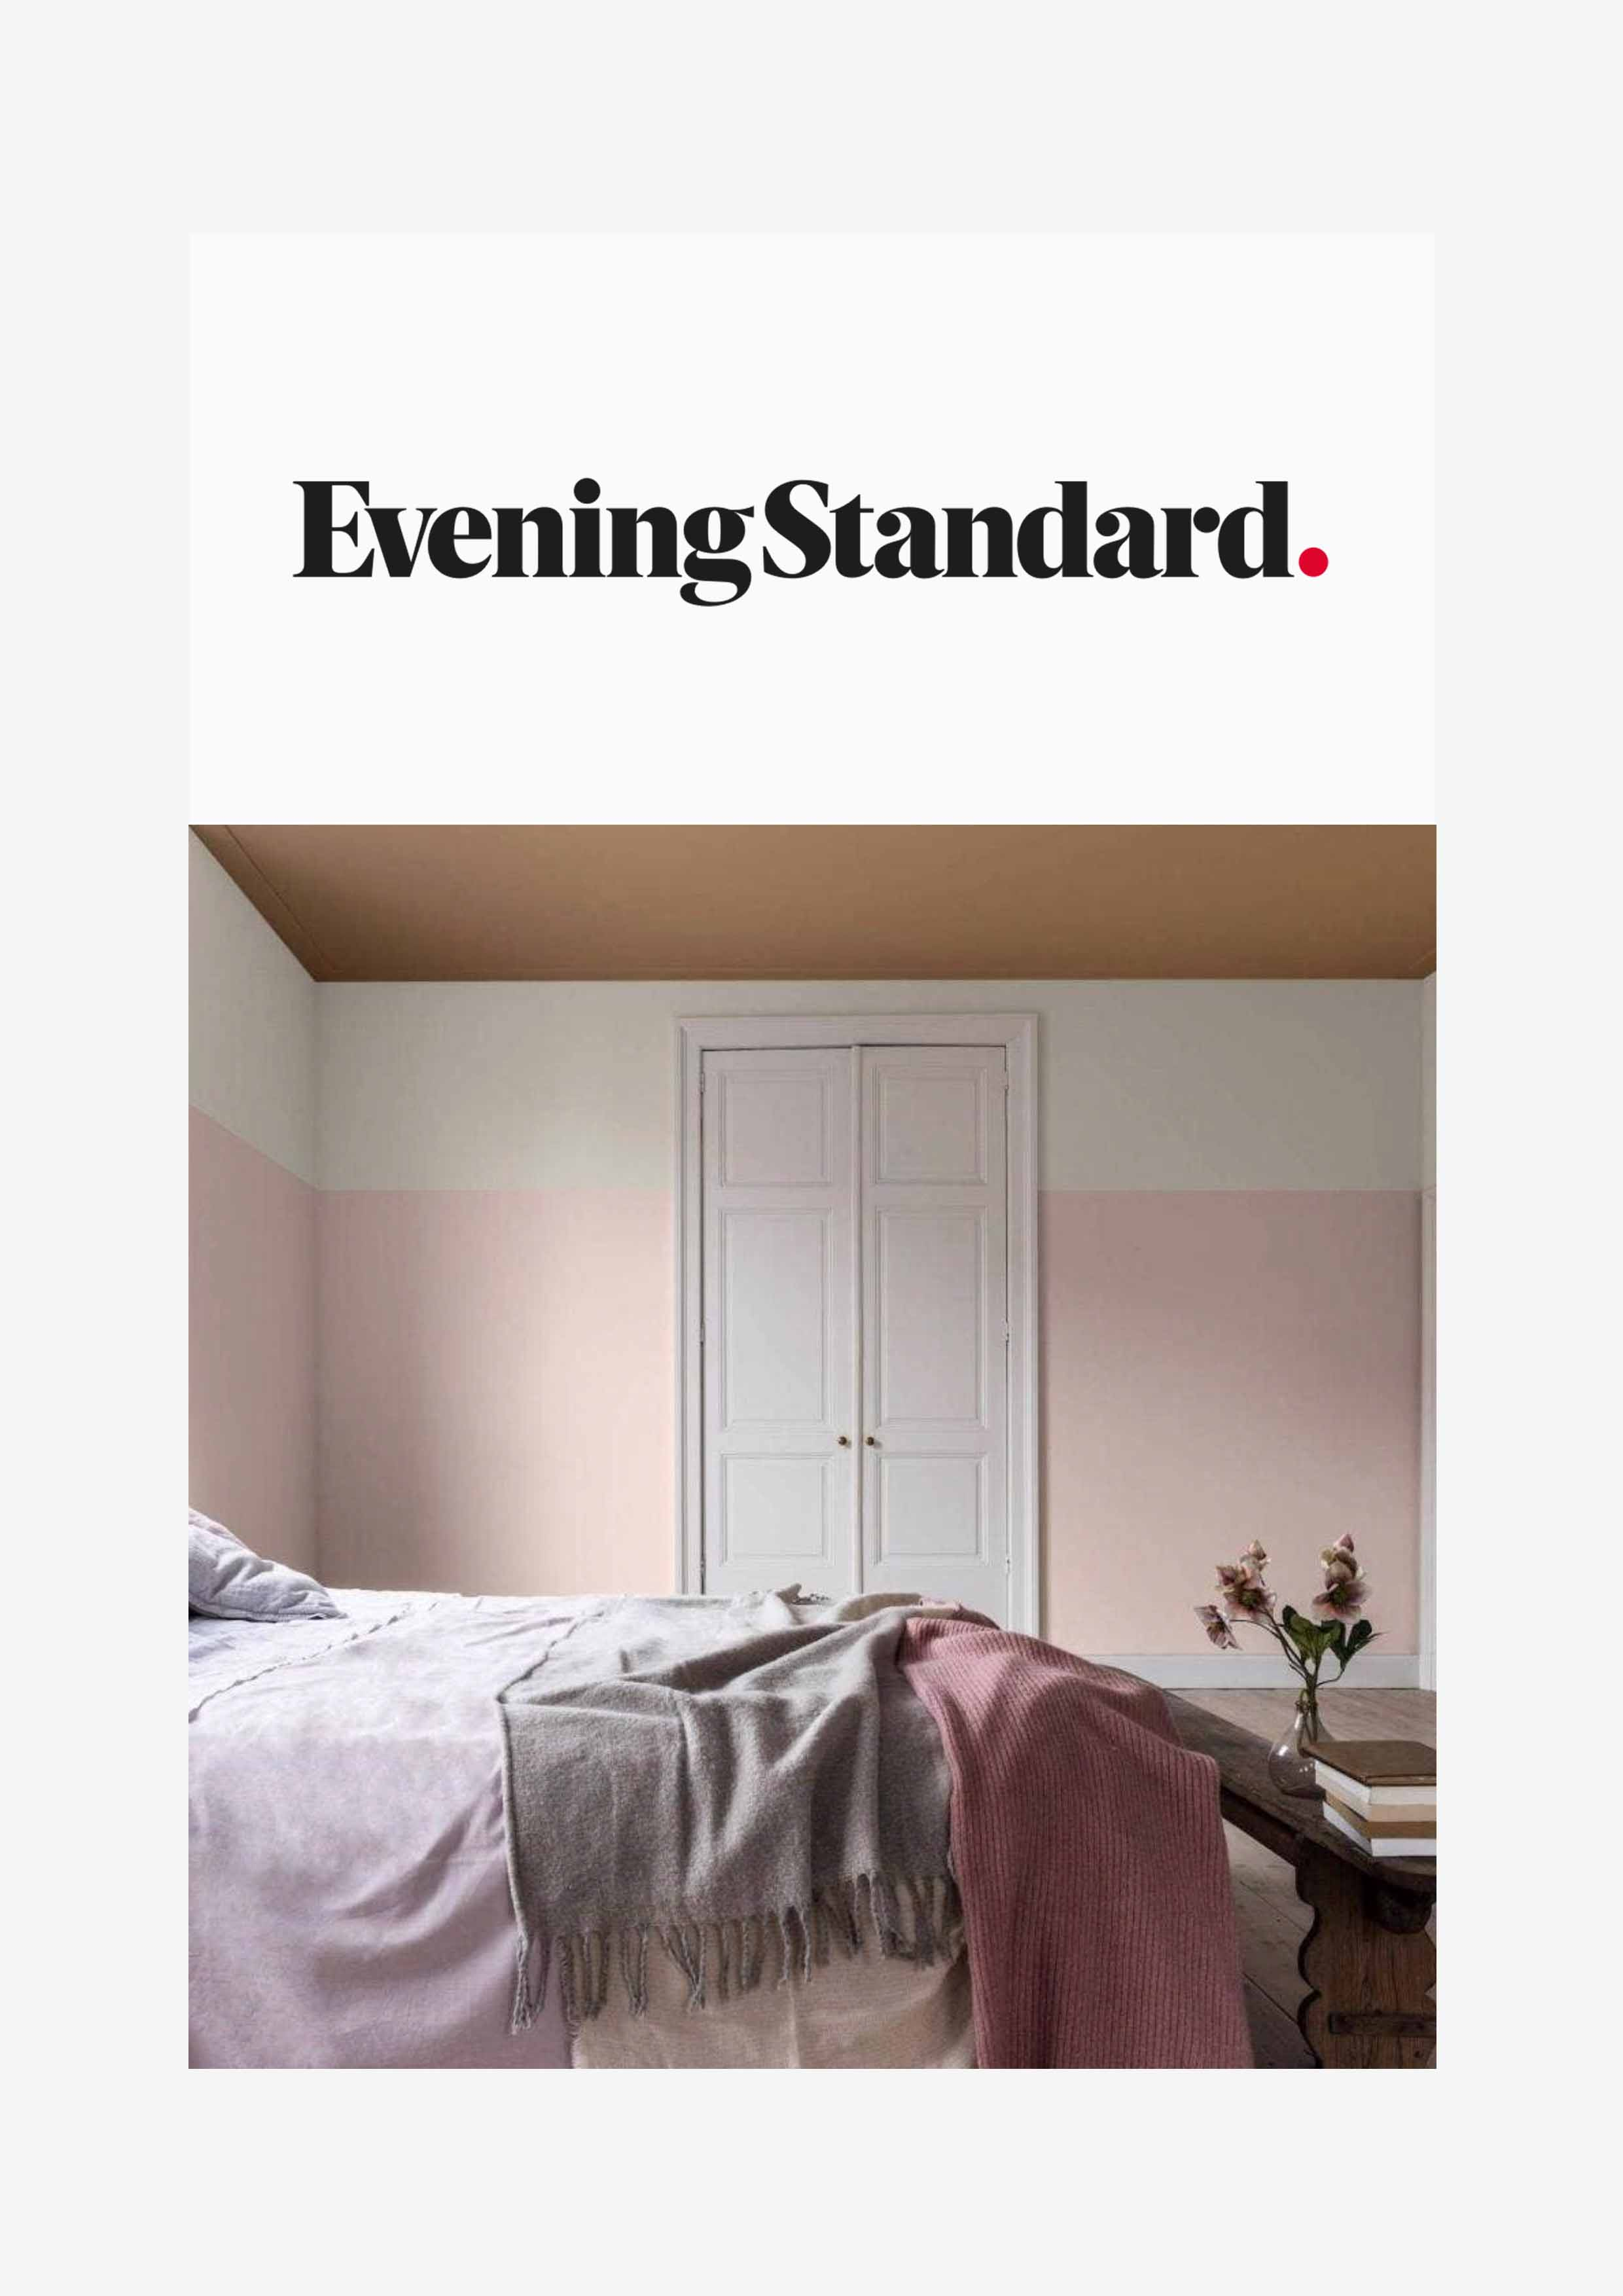 Evening Standard Boxx Creative Comments on ceilings